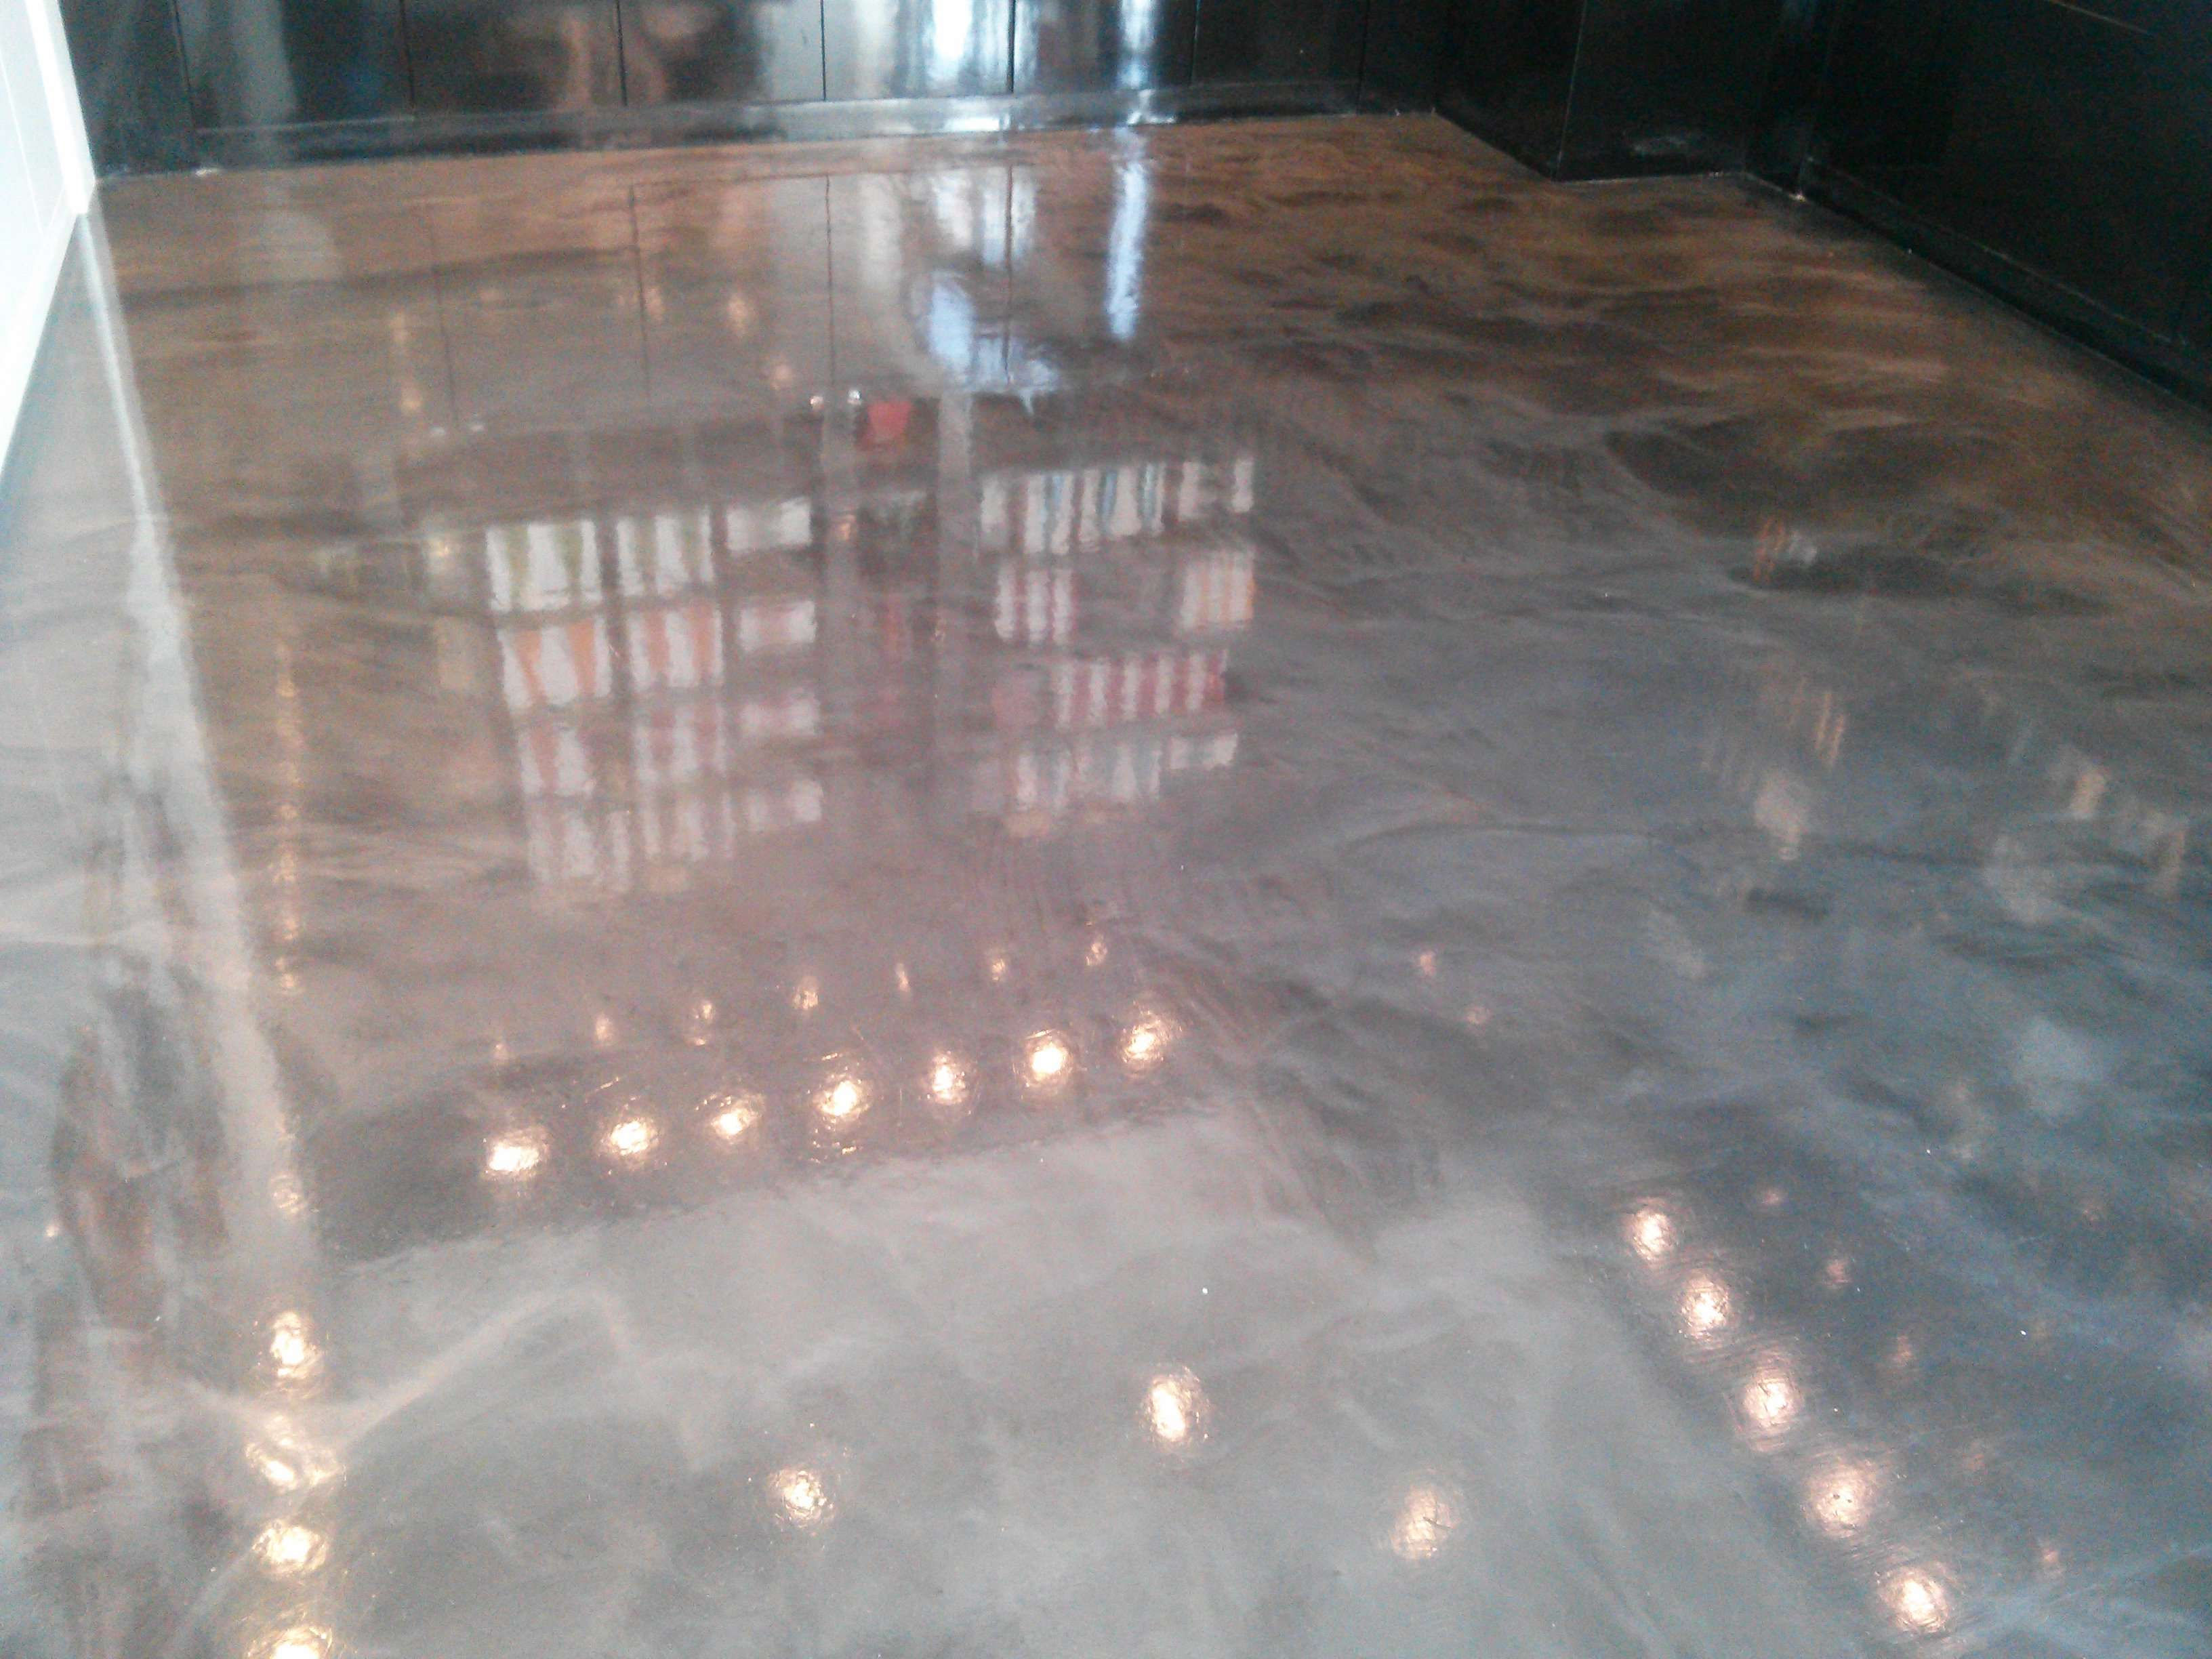 arbor ann detroit diamond polished pic enterprises floors of polishing floor willard mi prep concrete